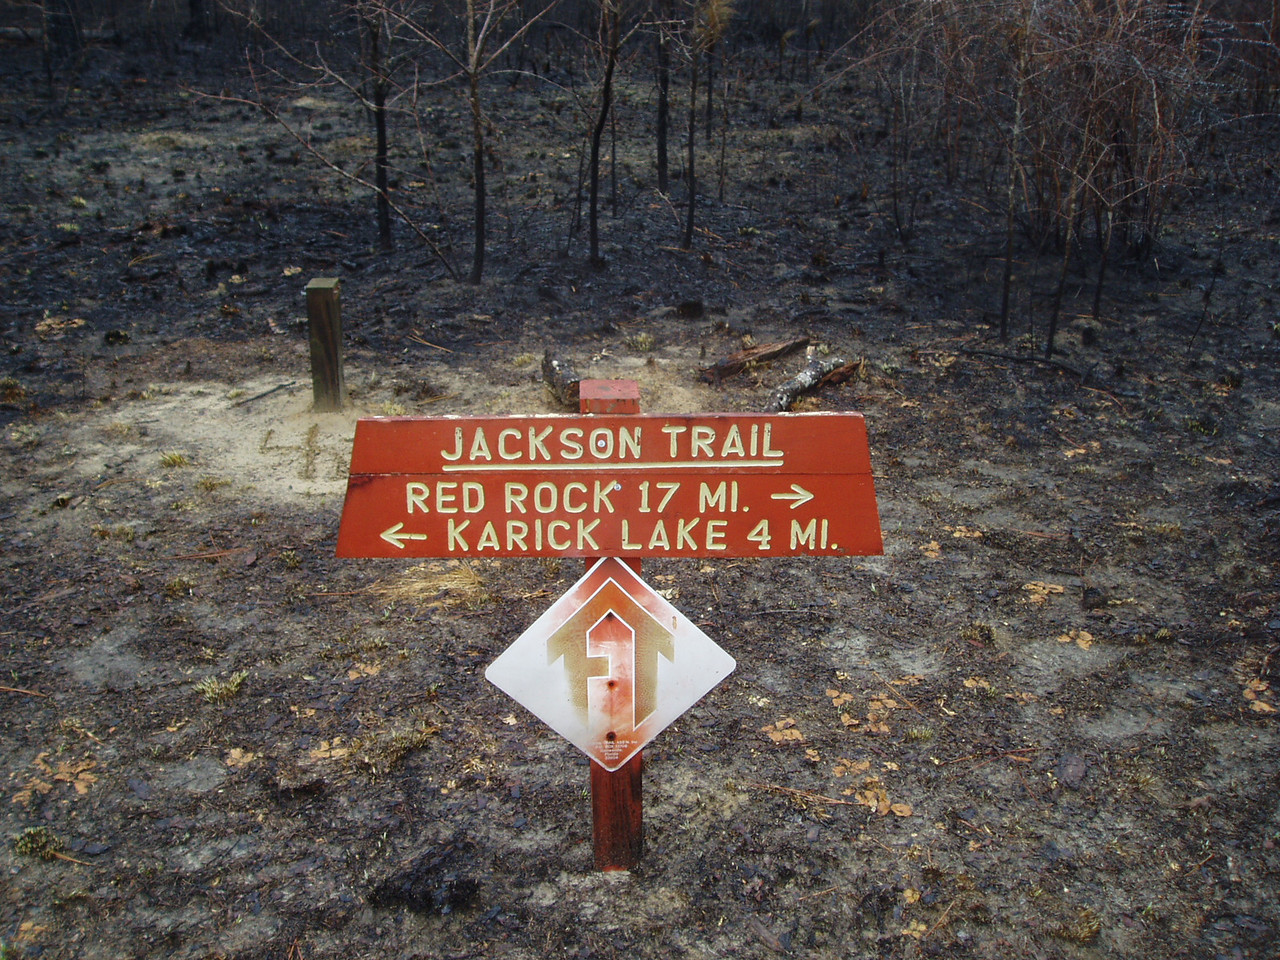 What's left after a prescribed burn<br /> PHOTO CREDIT: Robert Coveney / Florida Trail Association